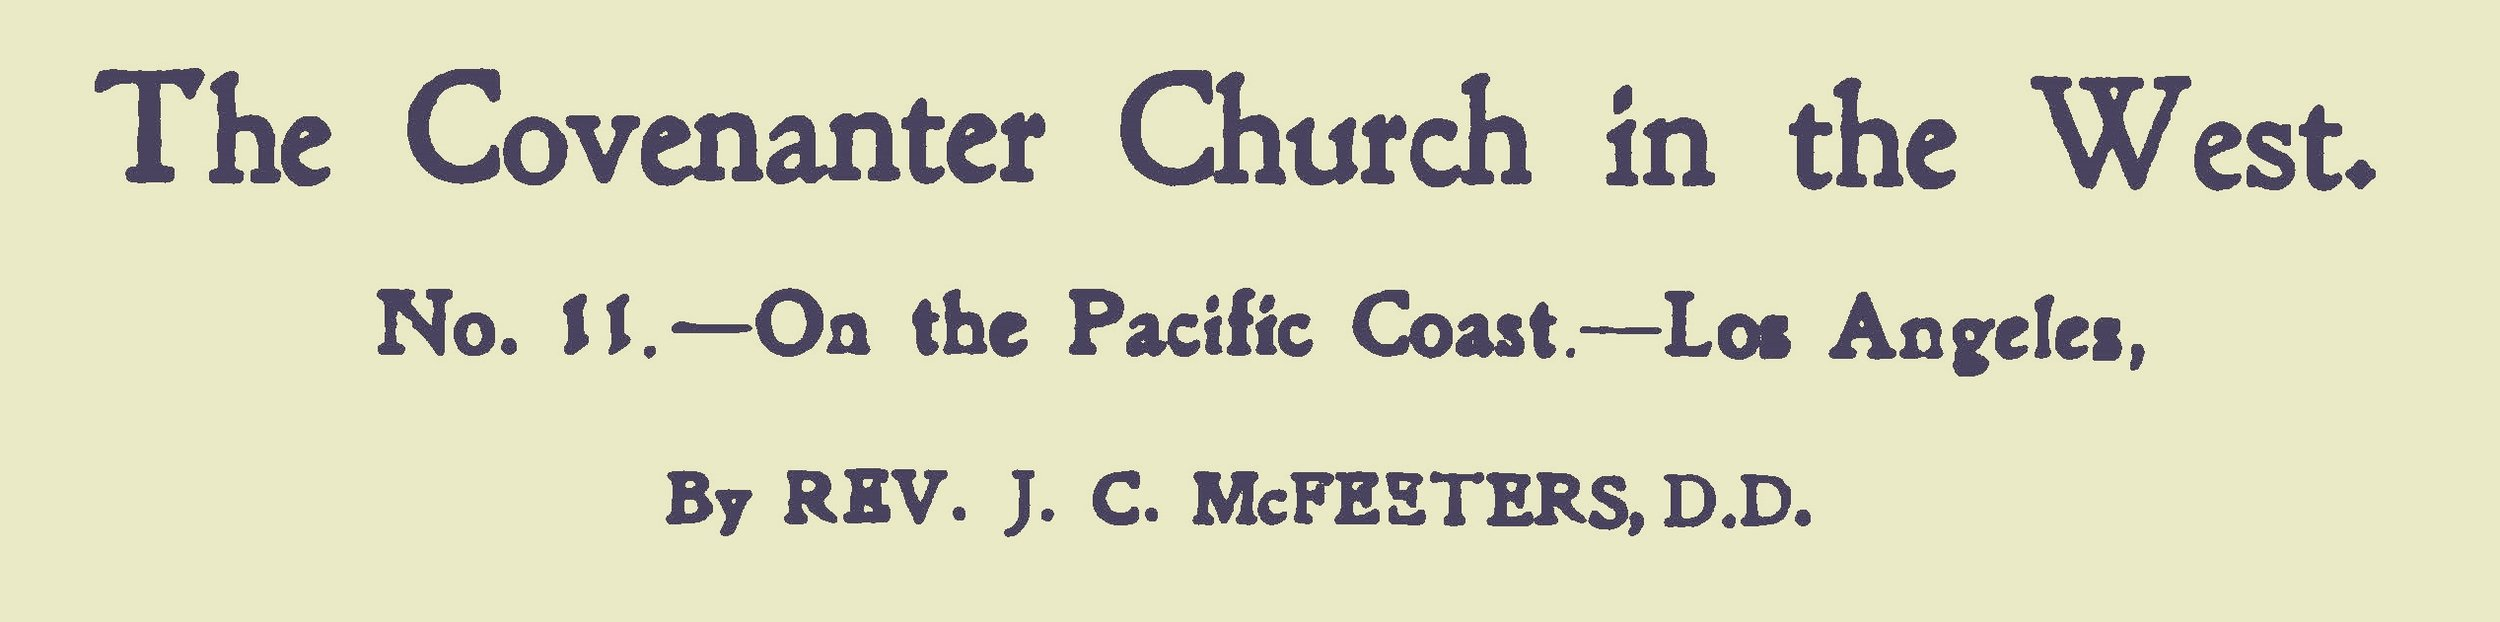 McFeeters, James Calvin, The Covenanter Church in the West Title Page.jpg